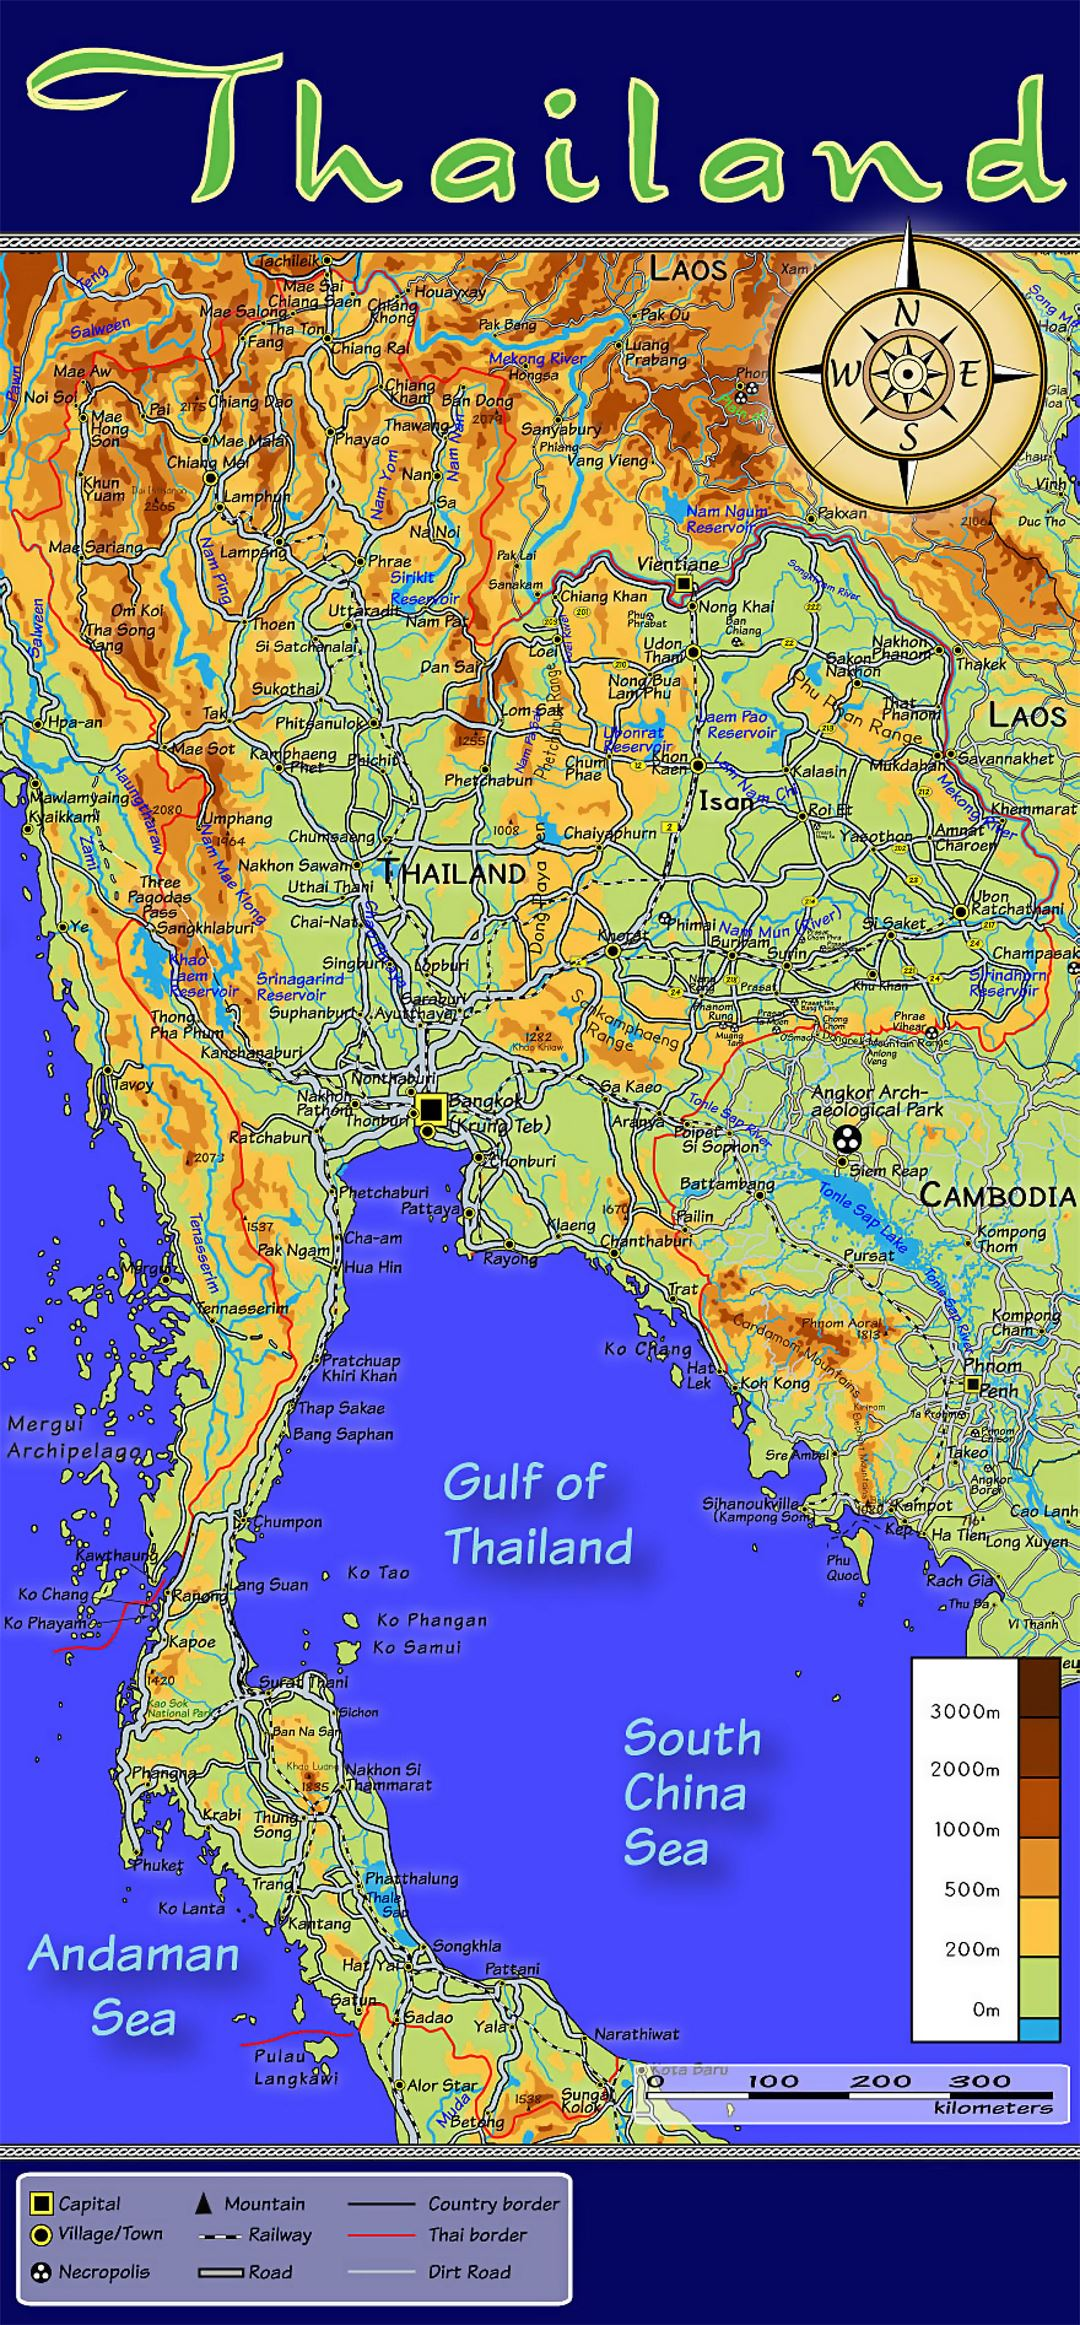 Topographic Map Asia.Detailed Topographic Map Of Thailand With Other Marks Thailand